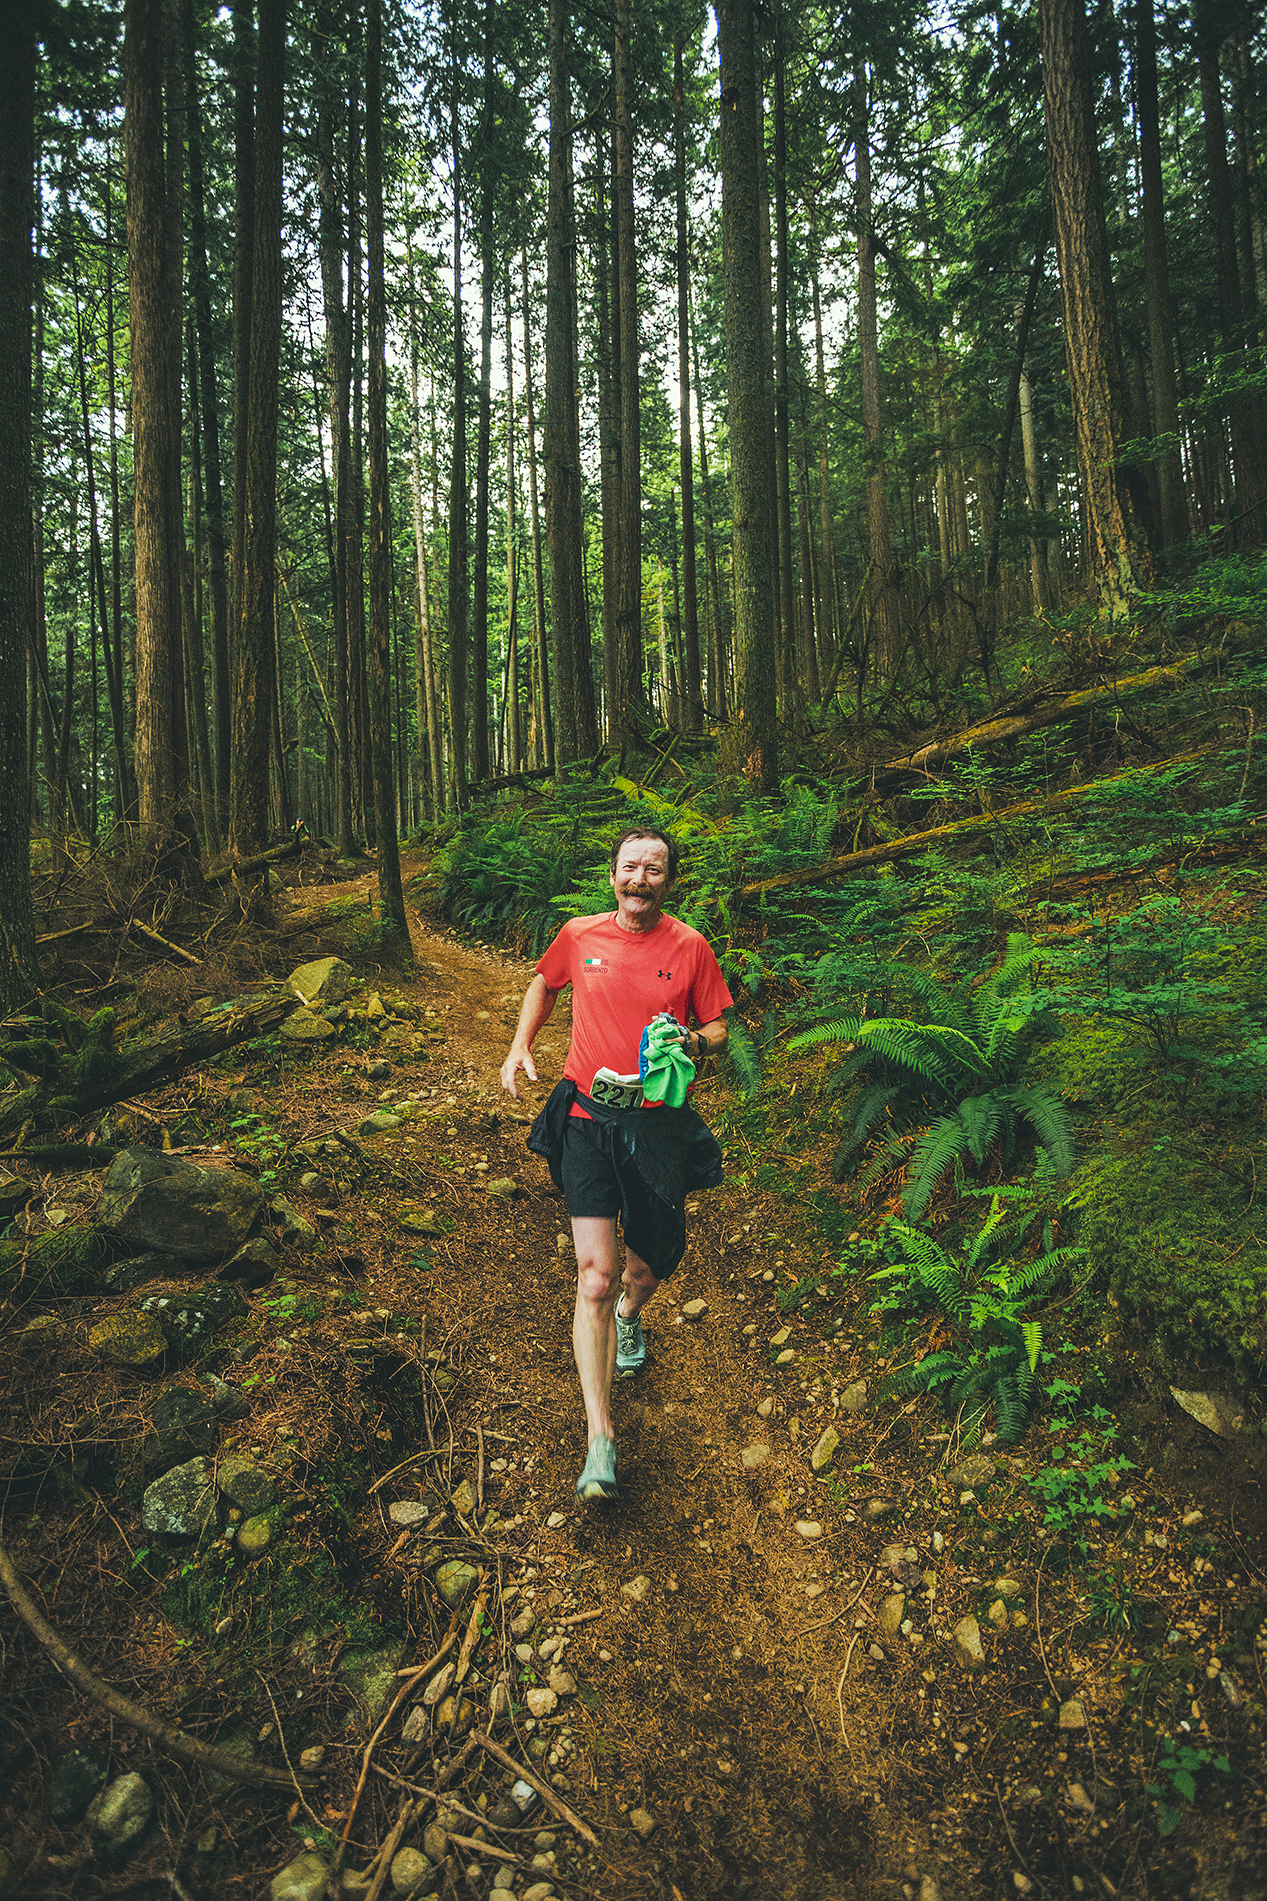 Fraser Valley Trail Races - Bear Mountain - IMG_2898 by Brice Ferre Studio - Vancouver Portrait Adventure and Athlete Photographer.jpg